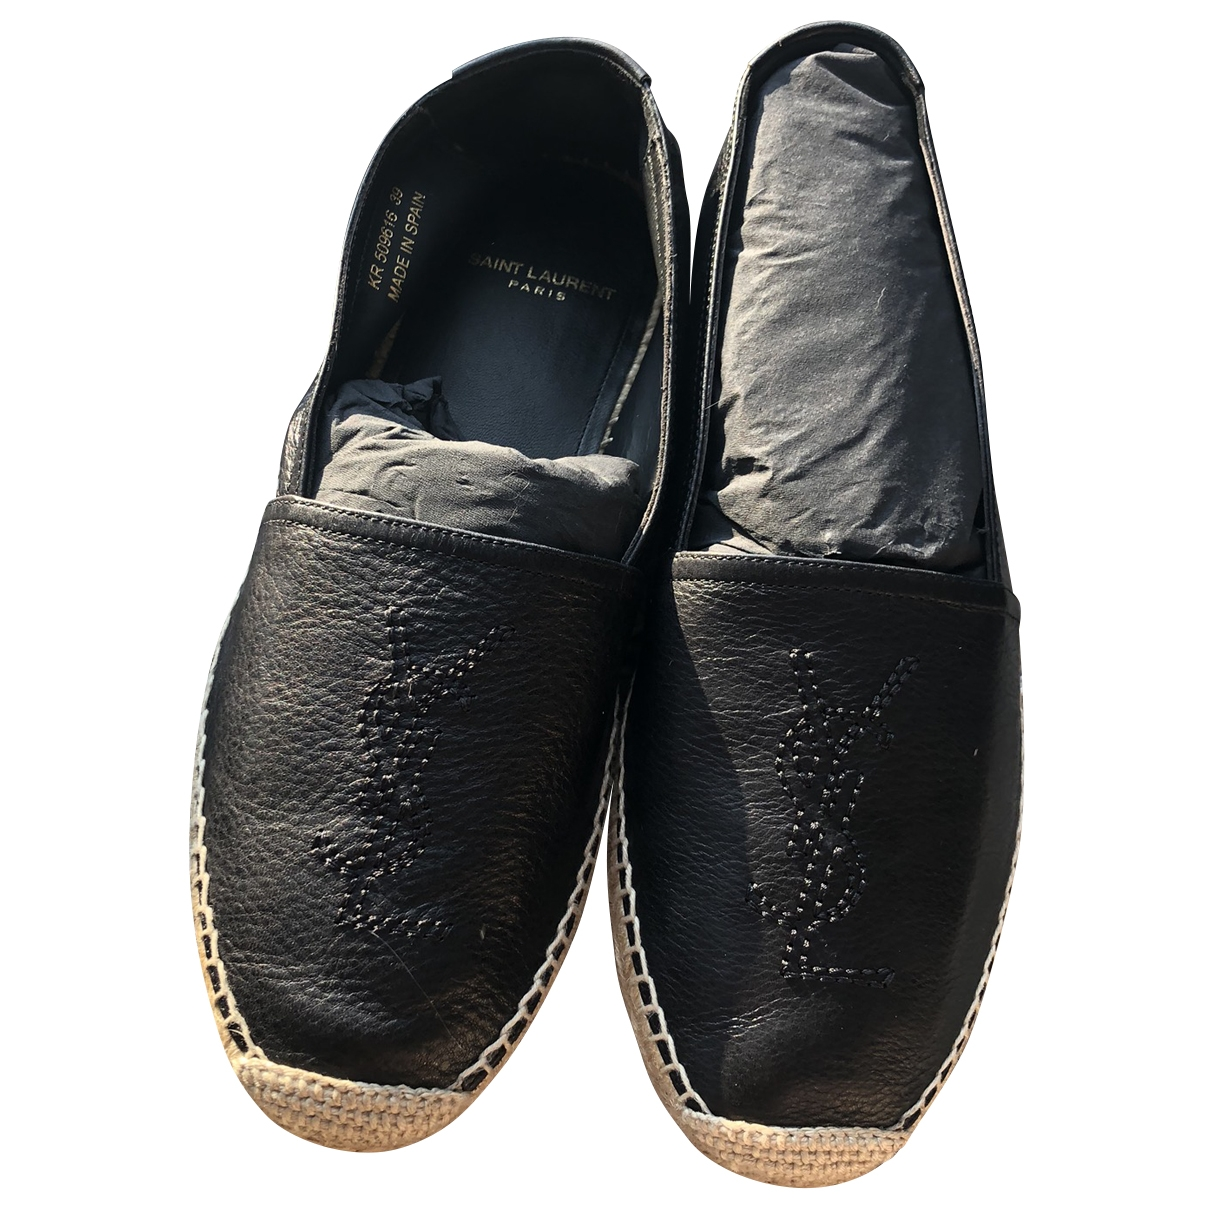 Saint Laurent \N Black Leather Espadrilles for Women 39 EU